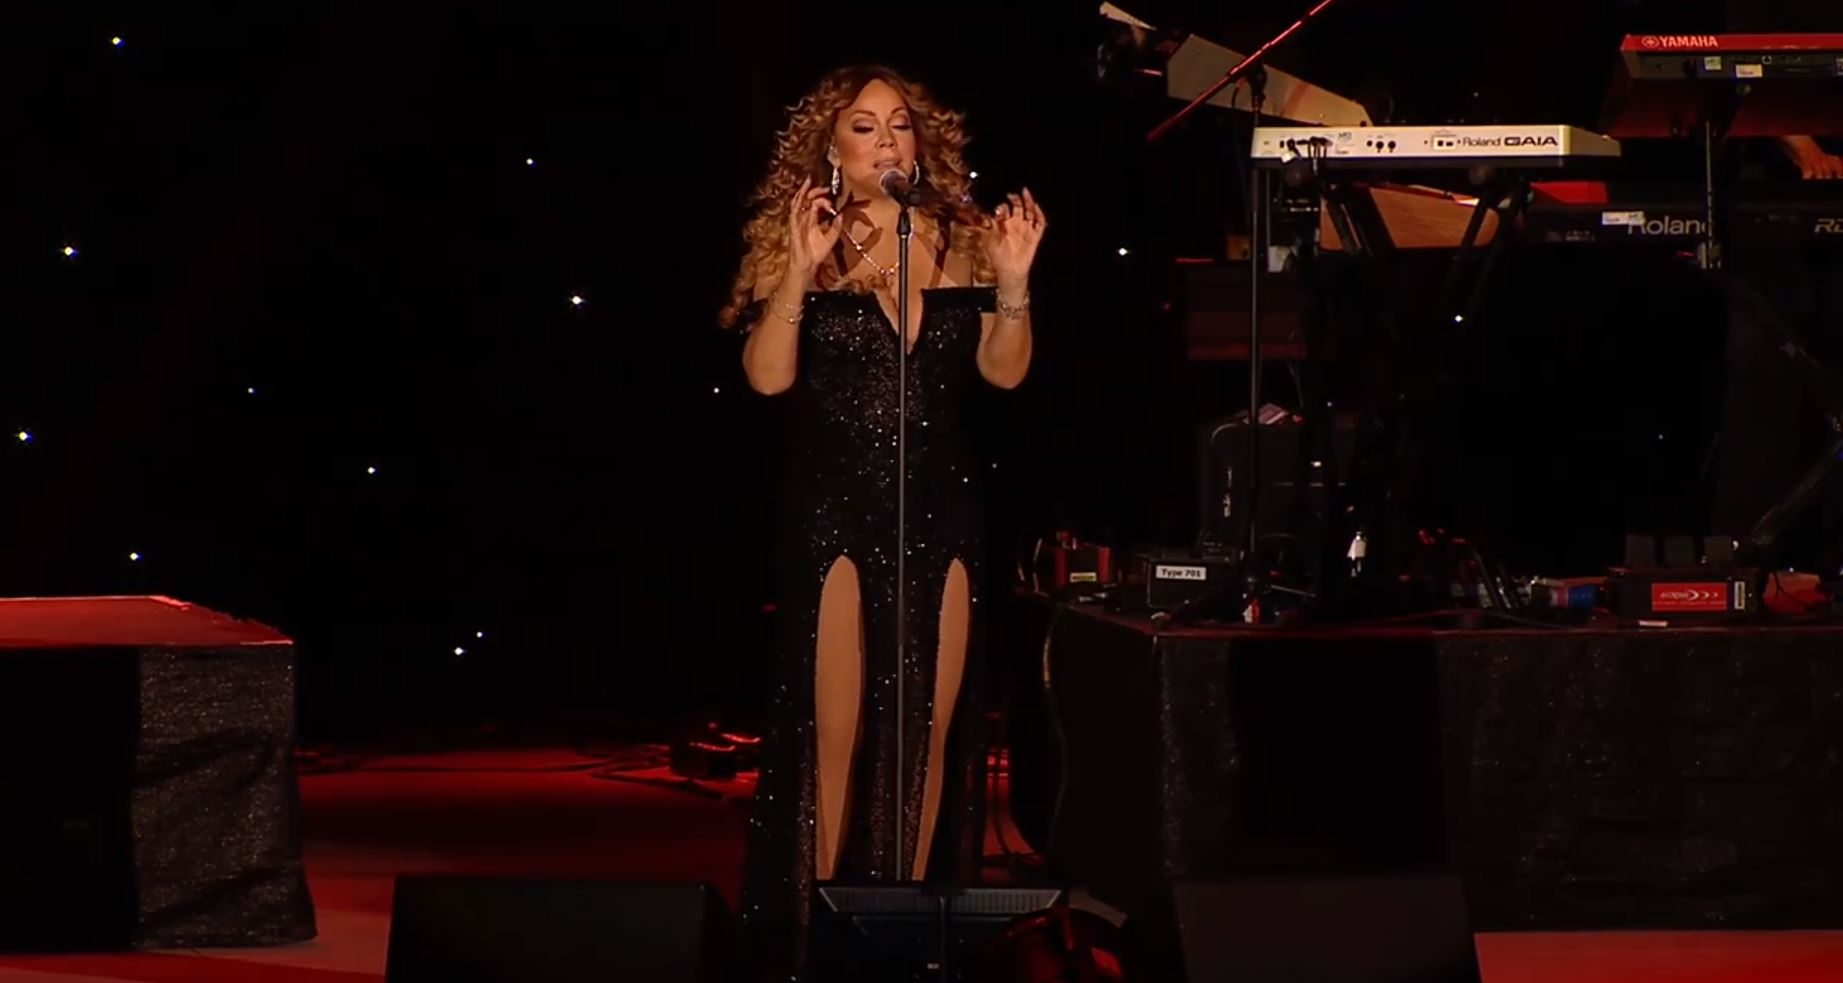 Mariah Carey performs George Michael's One More Try in heartfelt tribute to the music legend